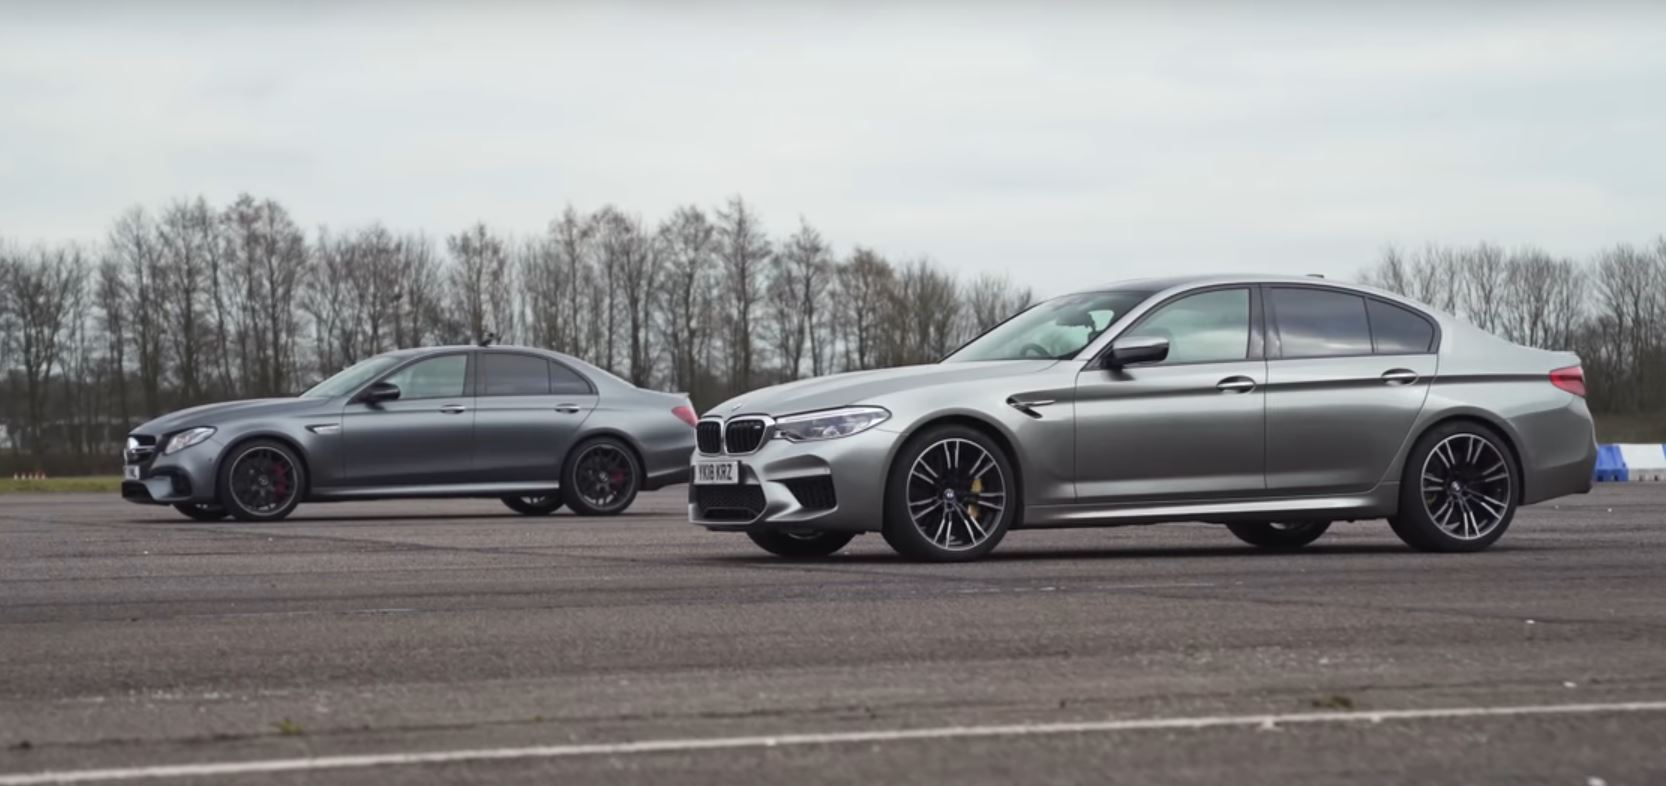 new bmw m5 vs. mercedes-amg e63 s: the awd drag race is finally here